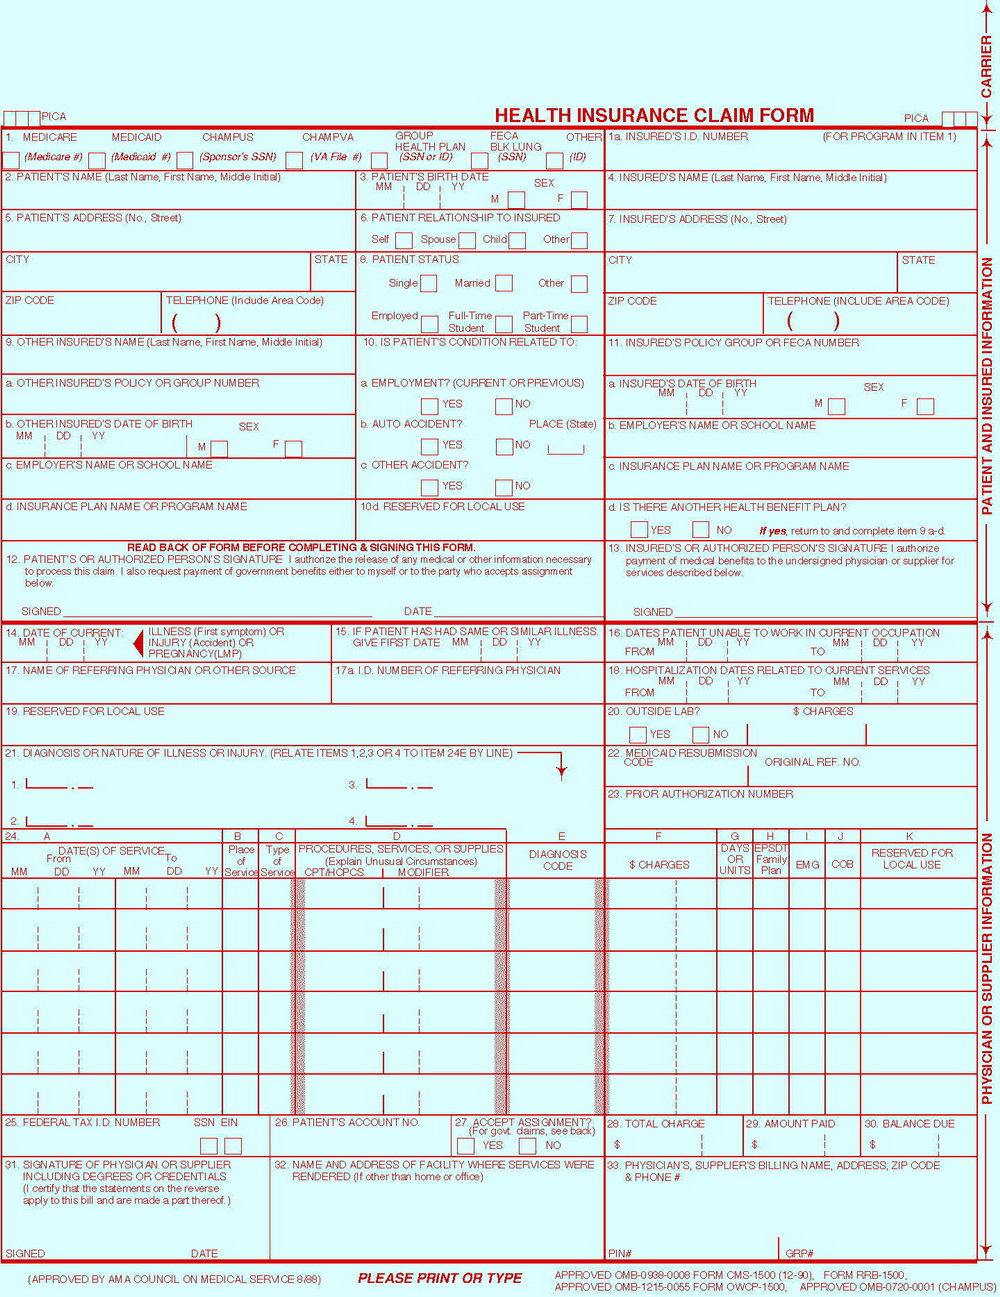 Cms 1500 Forms Office Depot